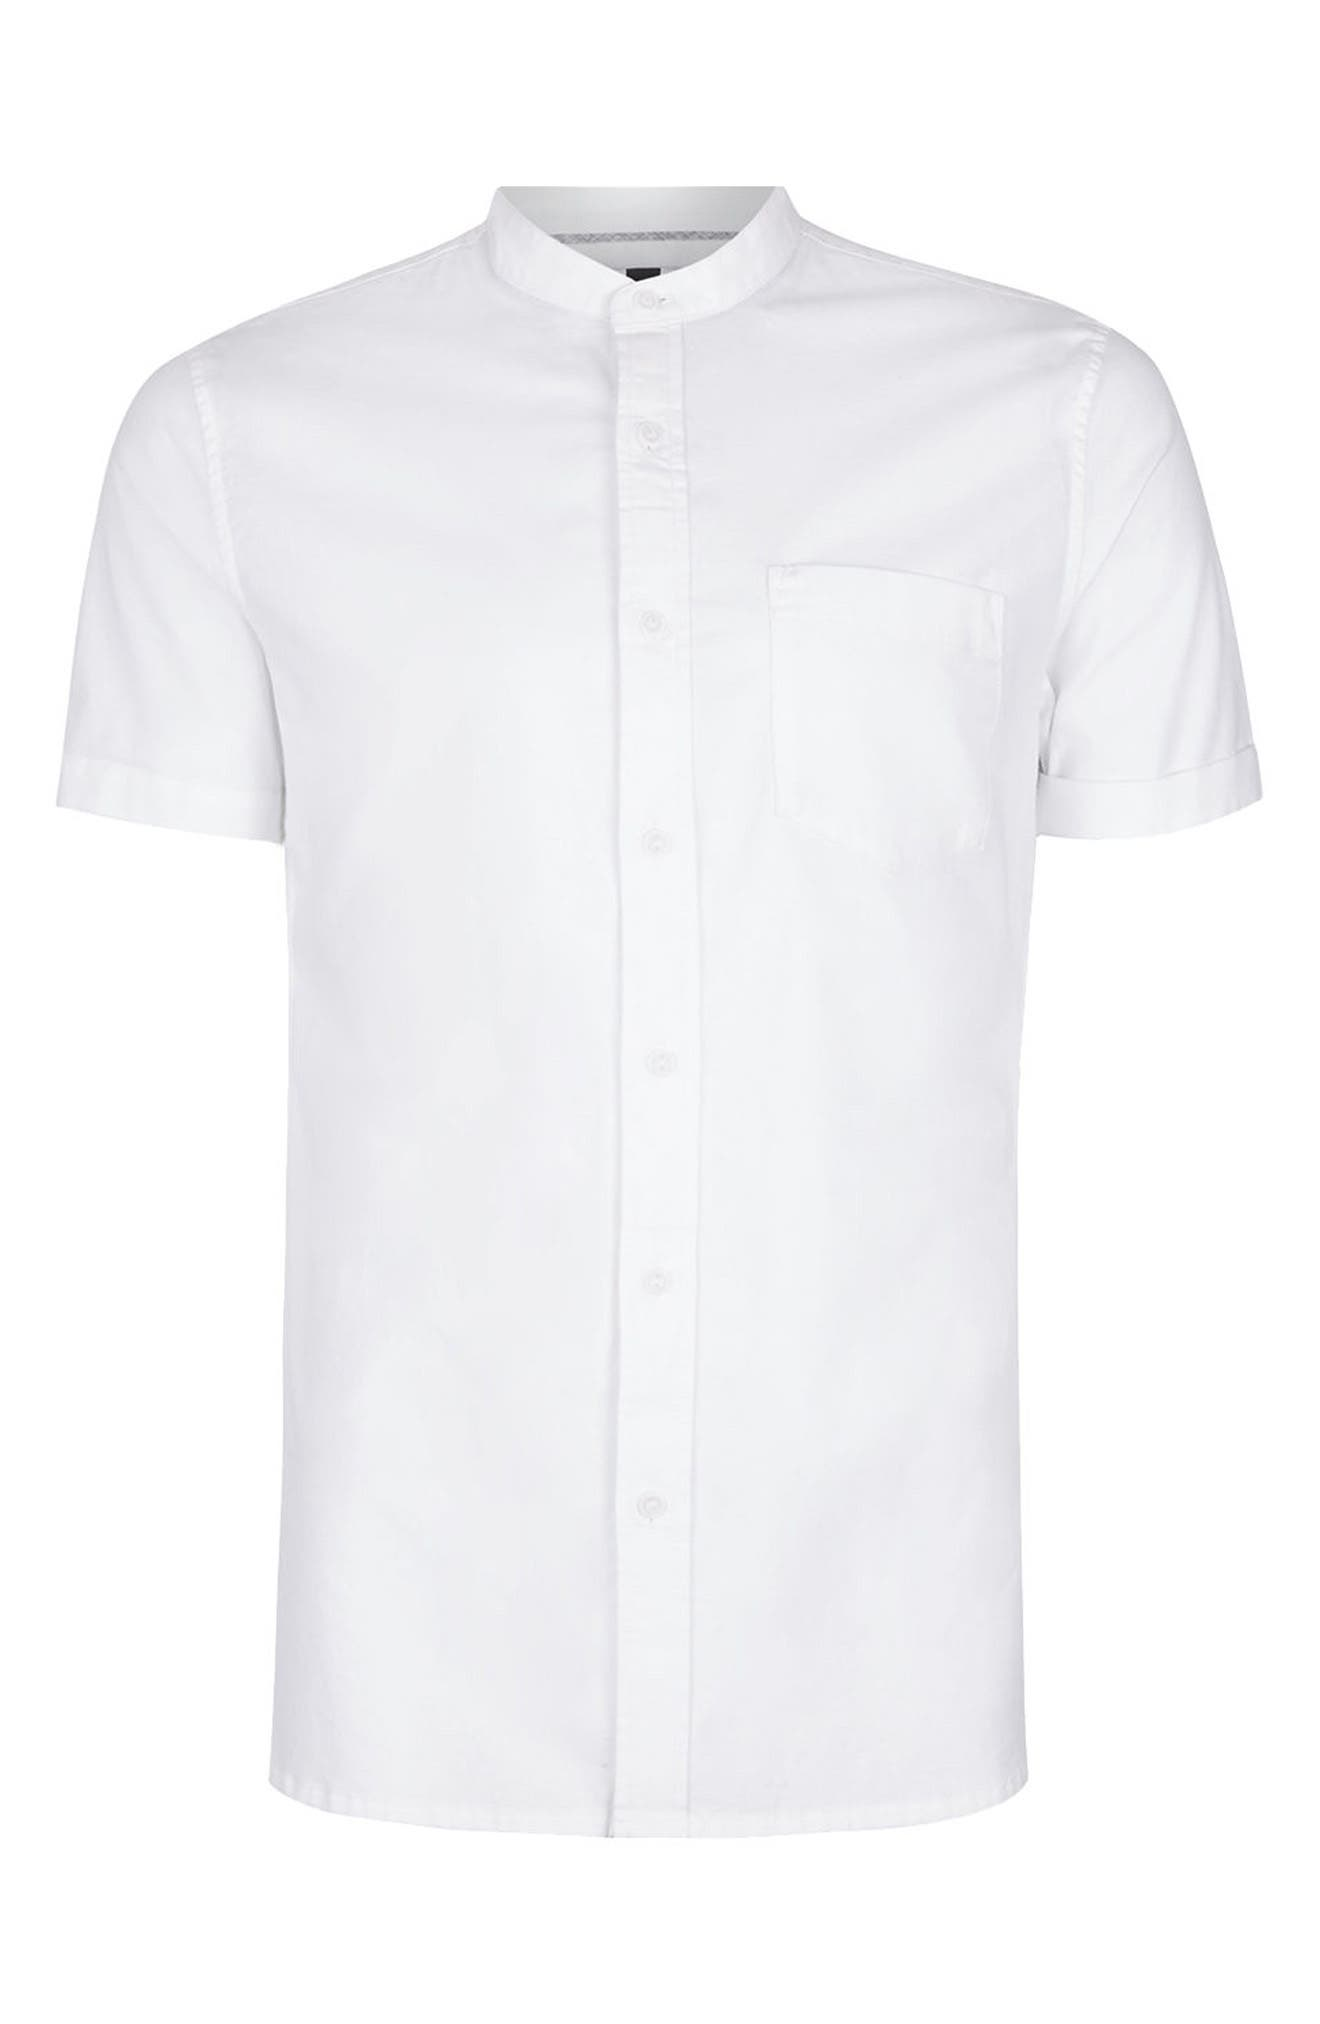 Classic Fit Stand Collar Oxford Shirt,                             Alternate thumbnail 4, color,                             White